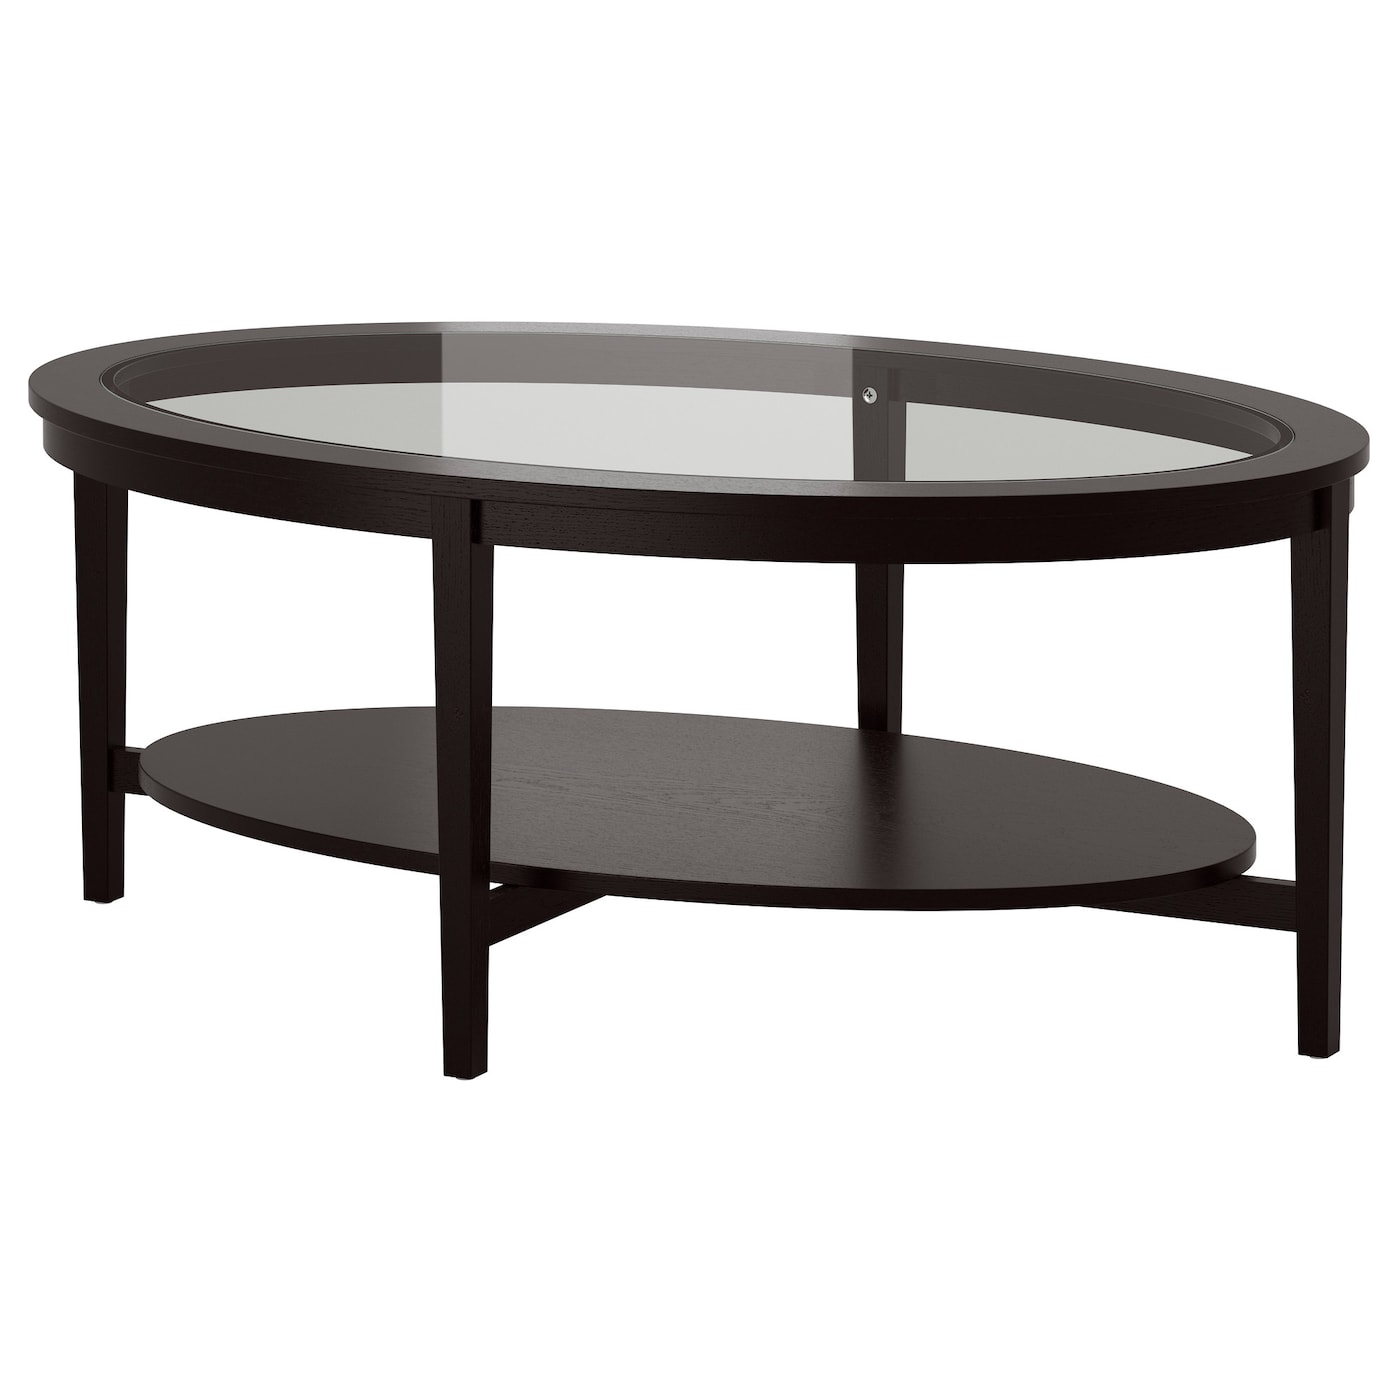 Malmsta coffee table black brown 130x80 cm ikea Ikea coffee tables and end tables